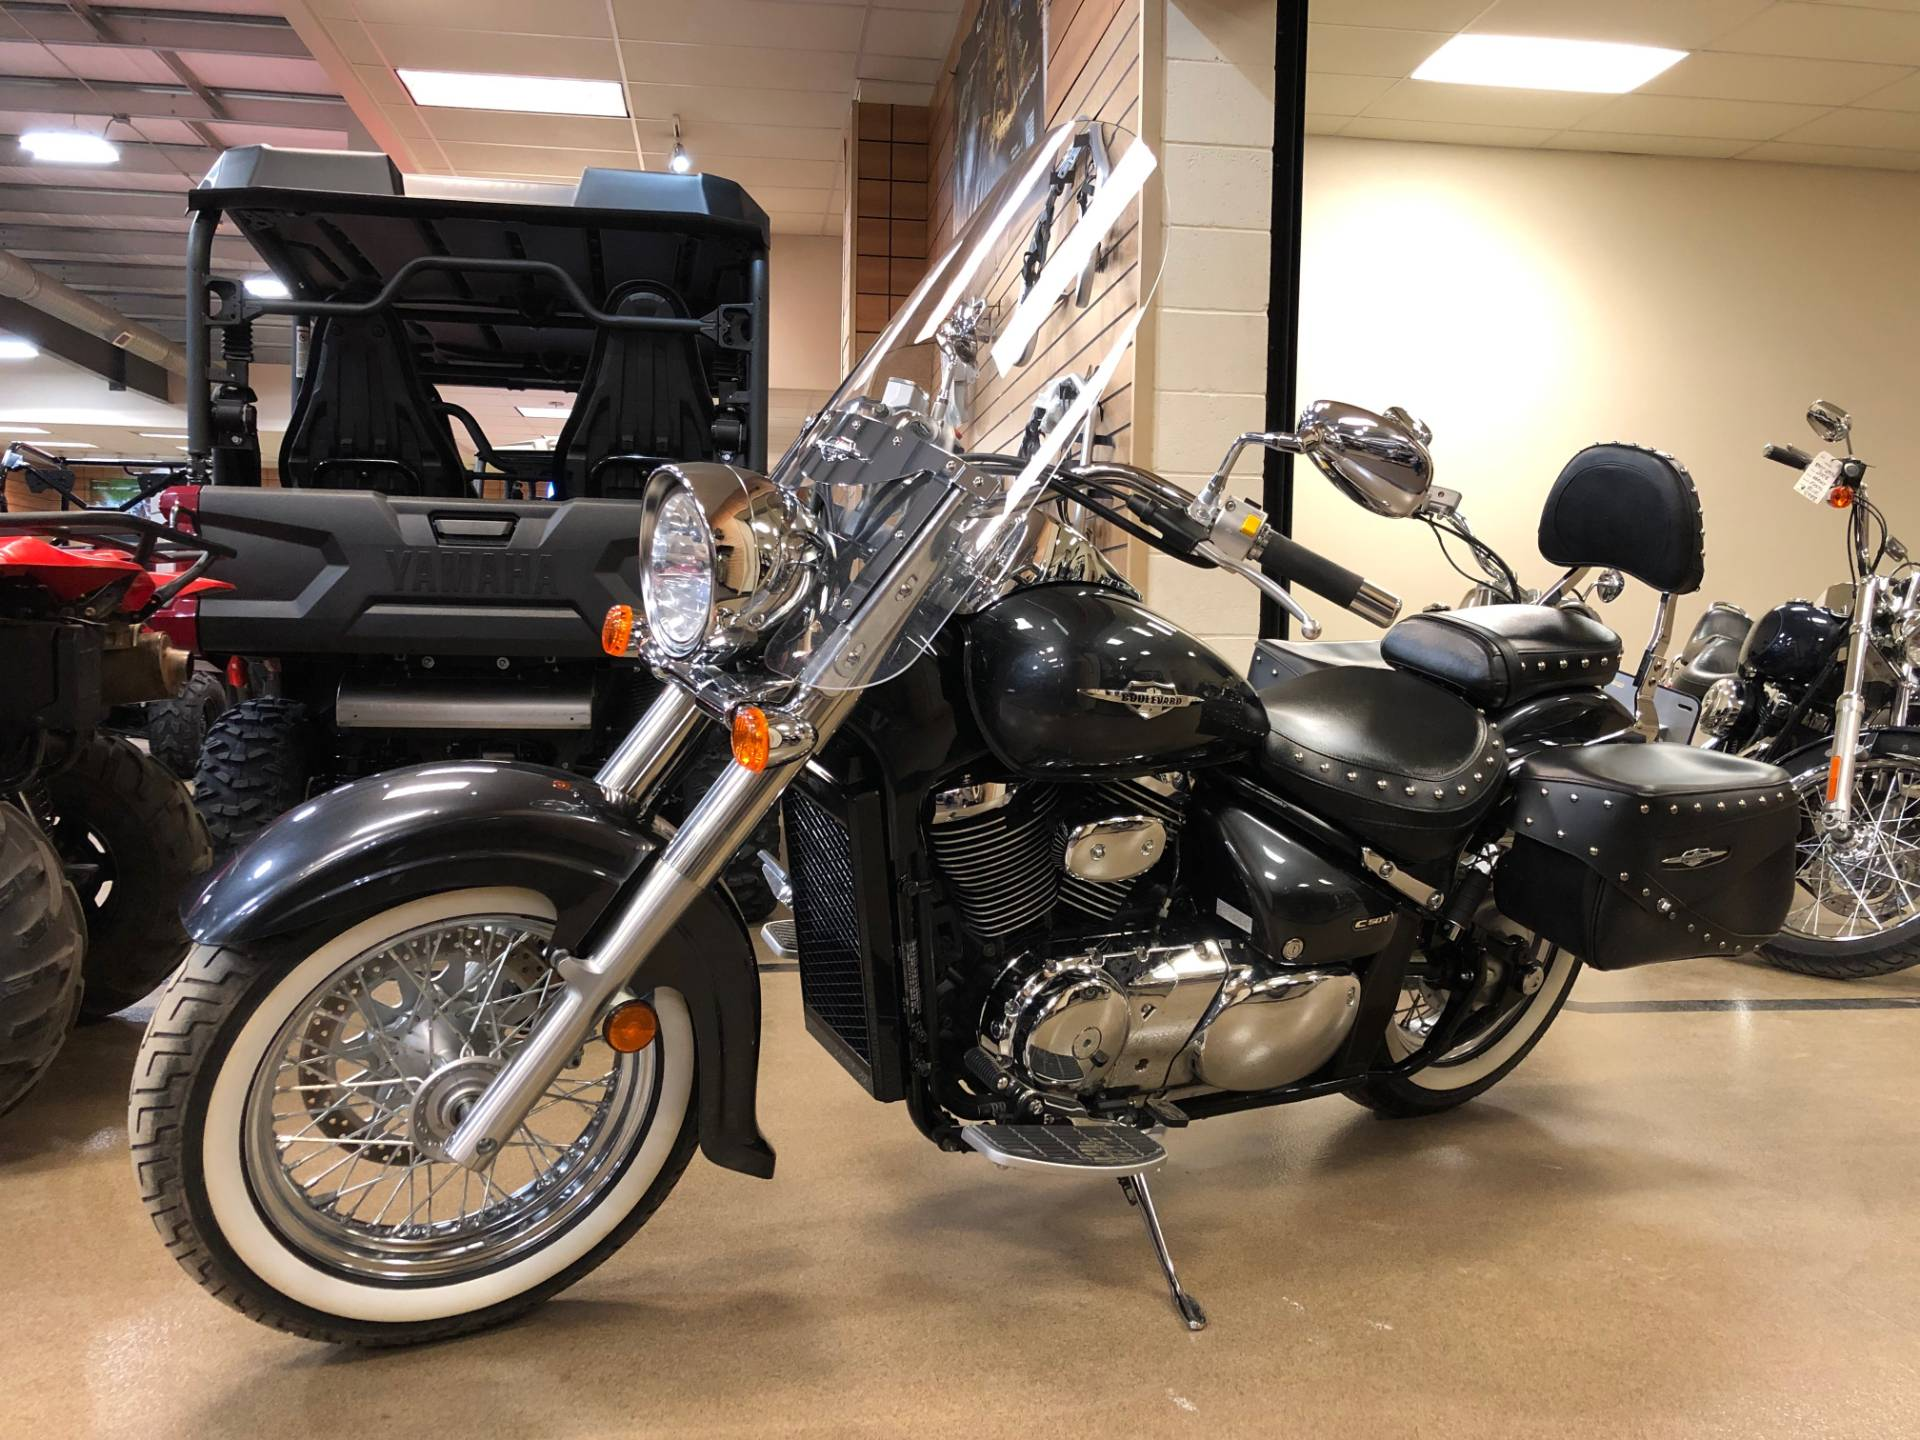 2006 Suzuki Boulevard C50 for sale 39626